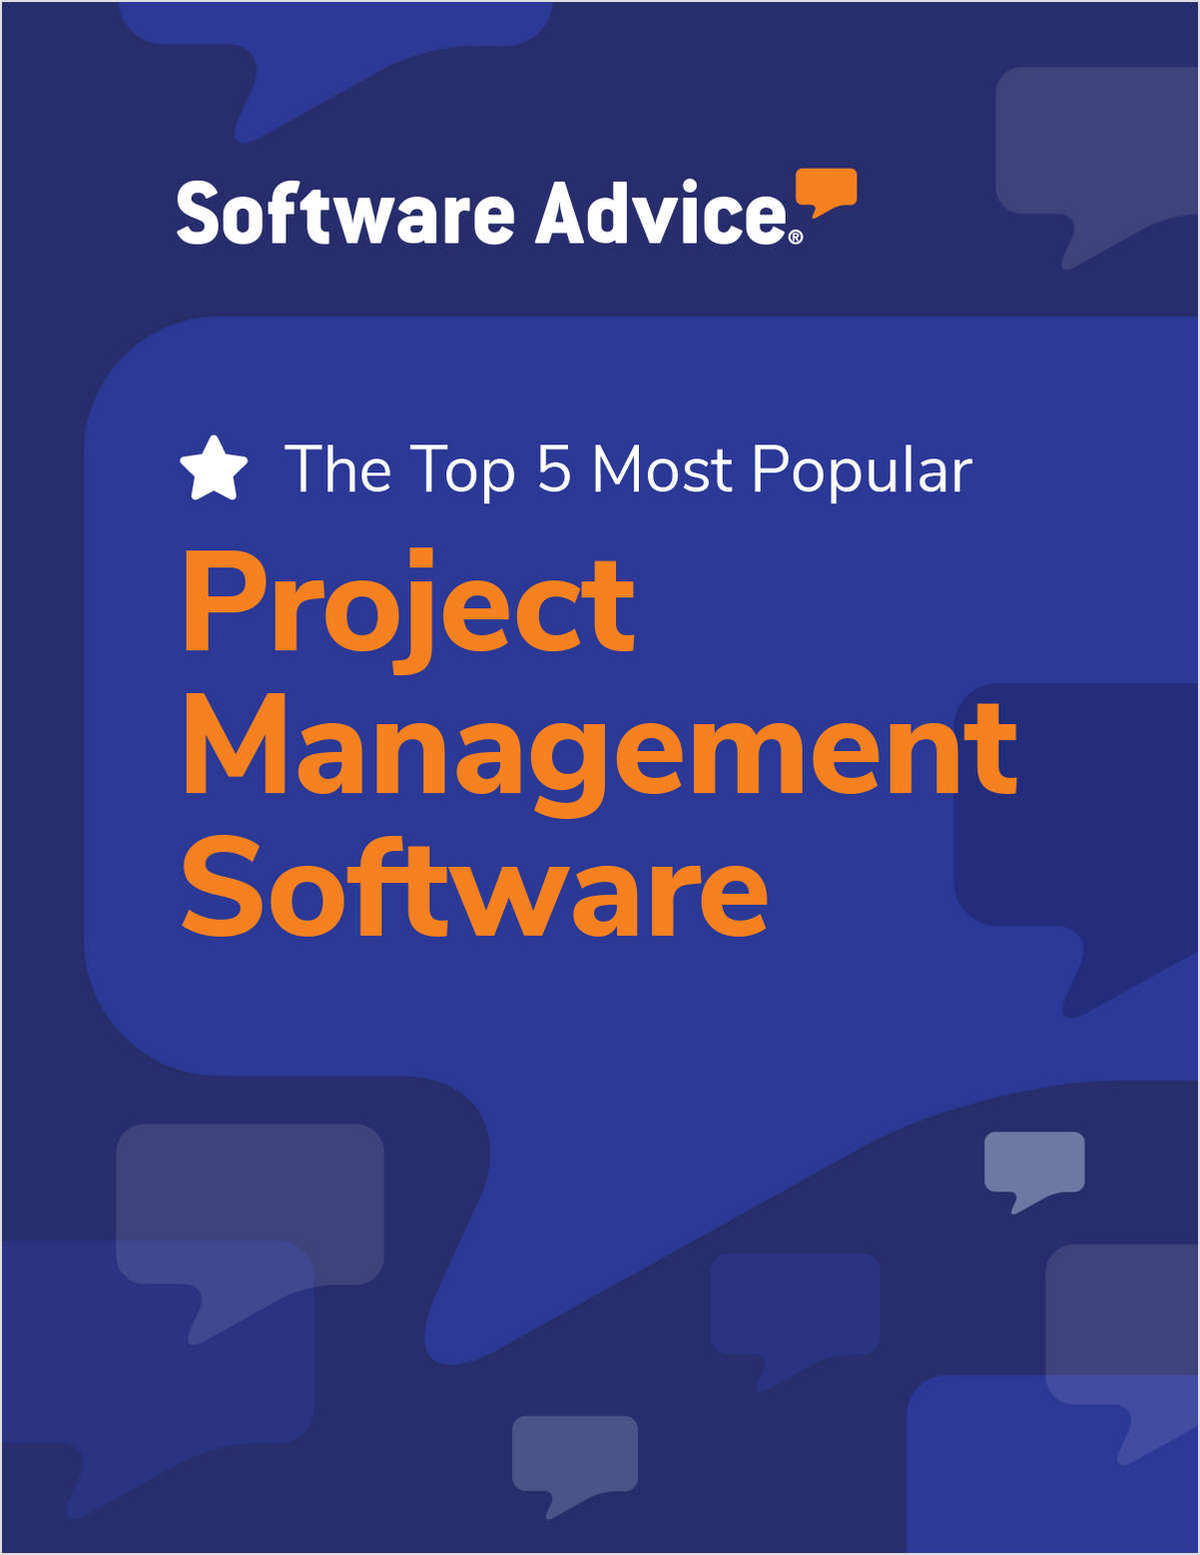 Software Advice's Top 5: Most Popular Project Management Software